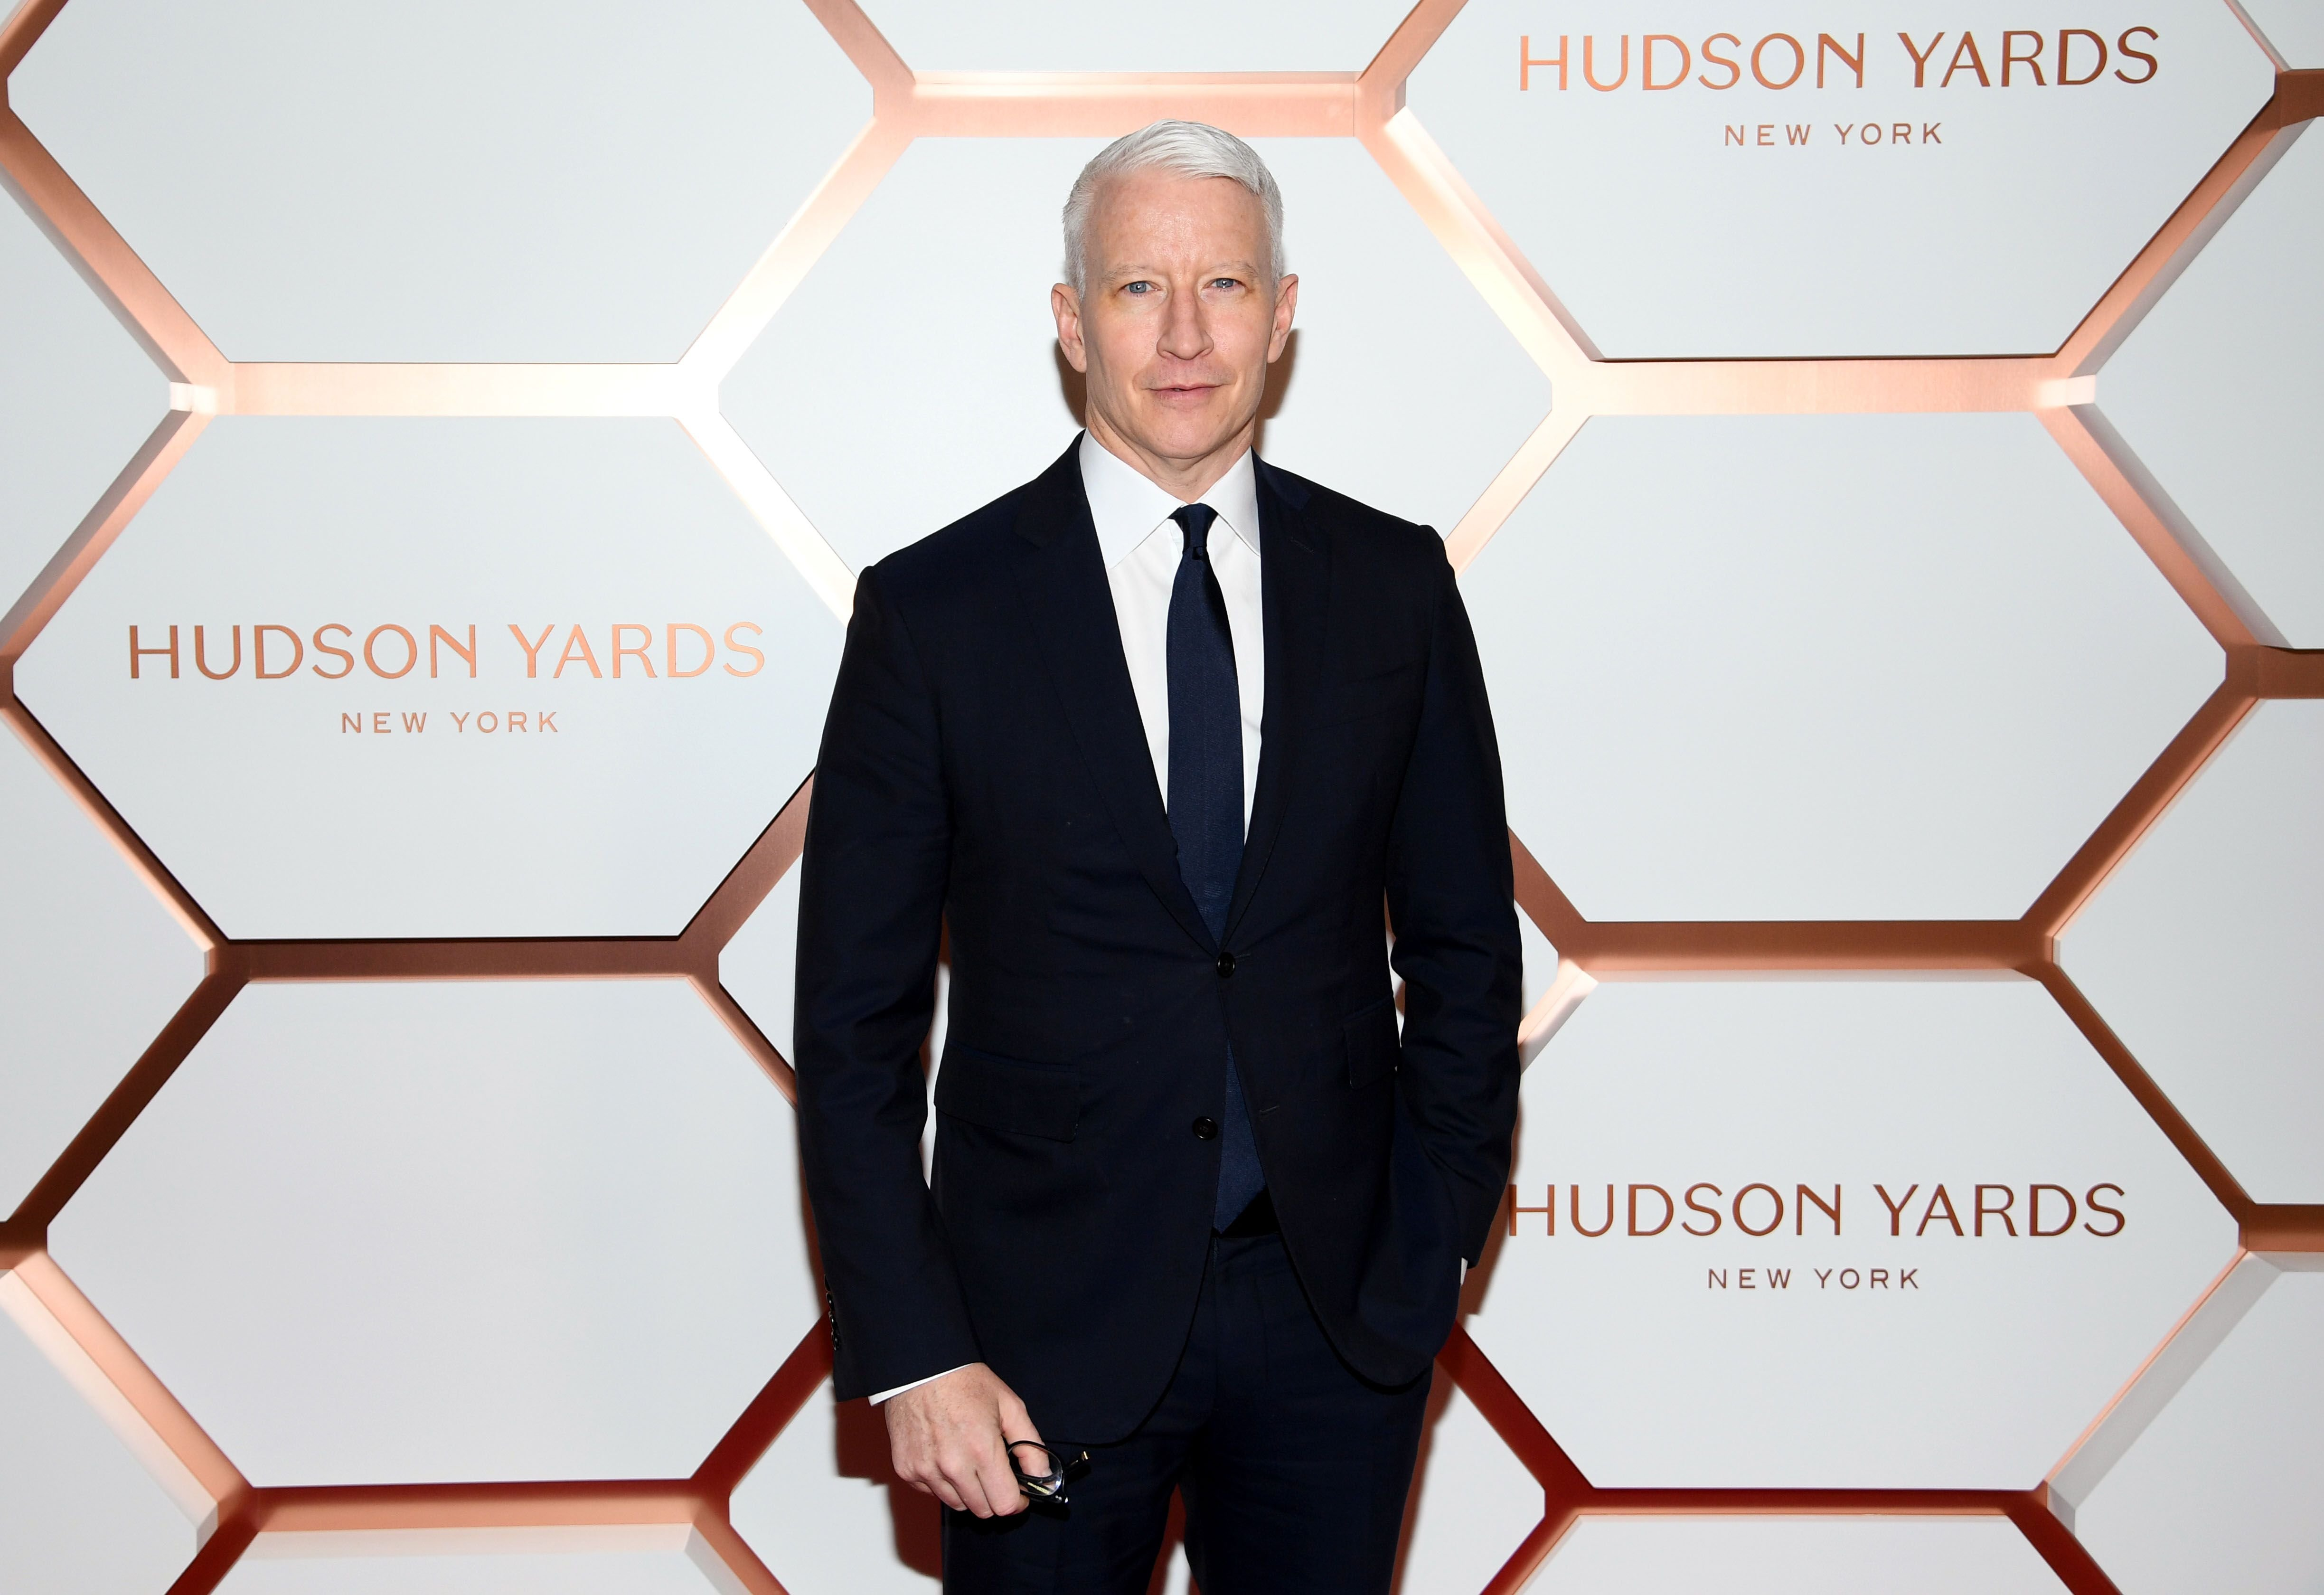 Anderson Cooper at Hudson Yards, New York's Newest Neighborhood, Official Opening Event on March 15, 2019 | Photo: Getty Images